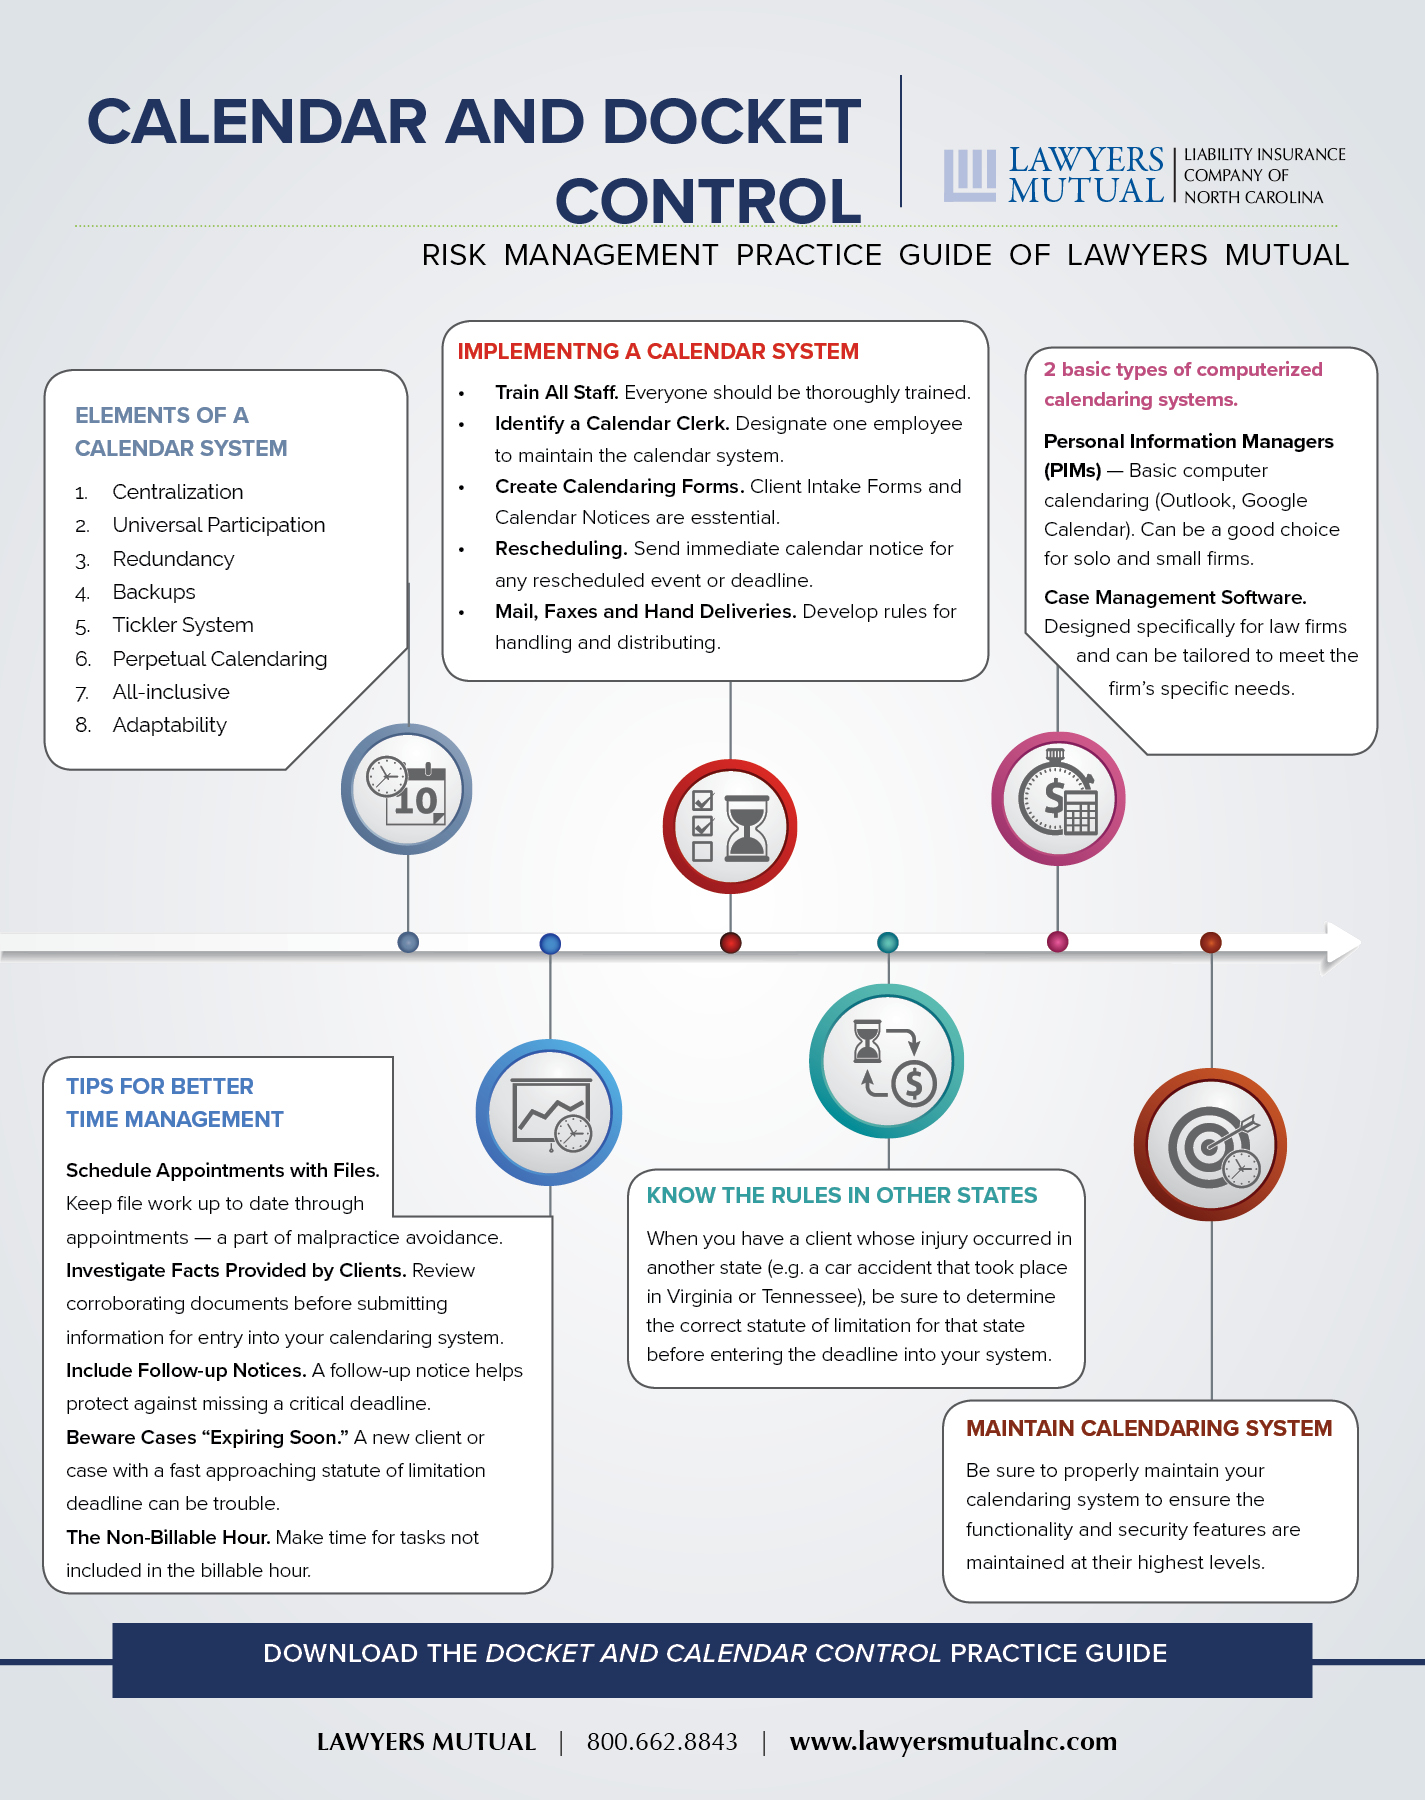 Infographic for Calendar and Docket Control practice guide